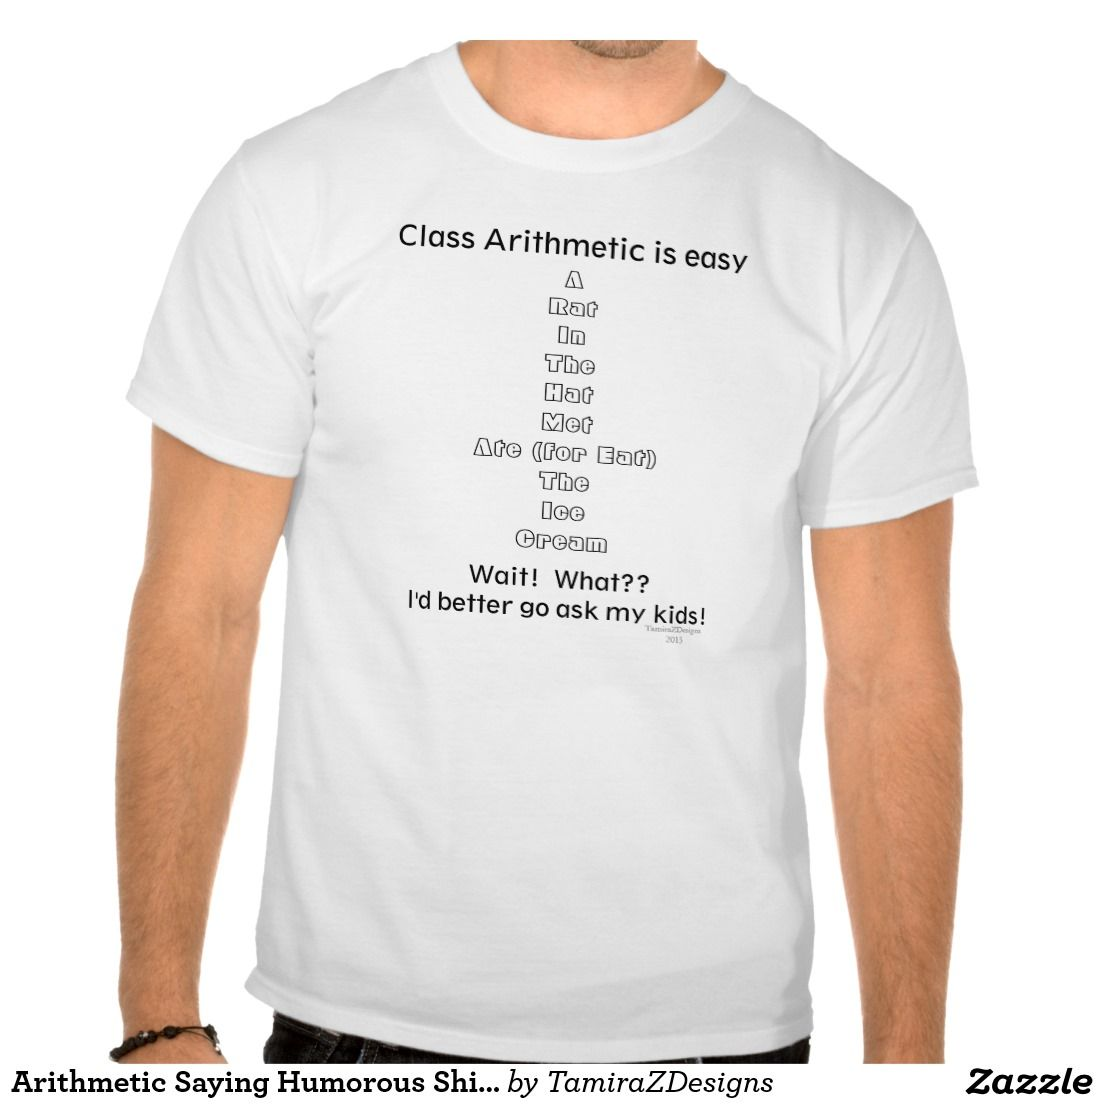 """""""Class Arithmetic Is Easy....Wait! What? I'd Better Go Ask My Kids!"""" Humorous Shirt.  Fun childhood memories learning to spell this Arithmetic in math class.  CLICK on Store link to view shirt details.  Available in all shirt styles, sizes, colors for Female or Male.  Original Artwork, Quote Text saying & Graphic Design © TamiraZDesigns.  Visit TamiraZDesigns store at:  www.zazzle.com/tamirazdesigns*"""